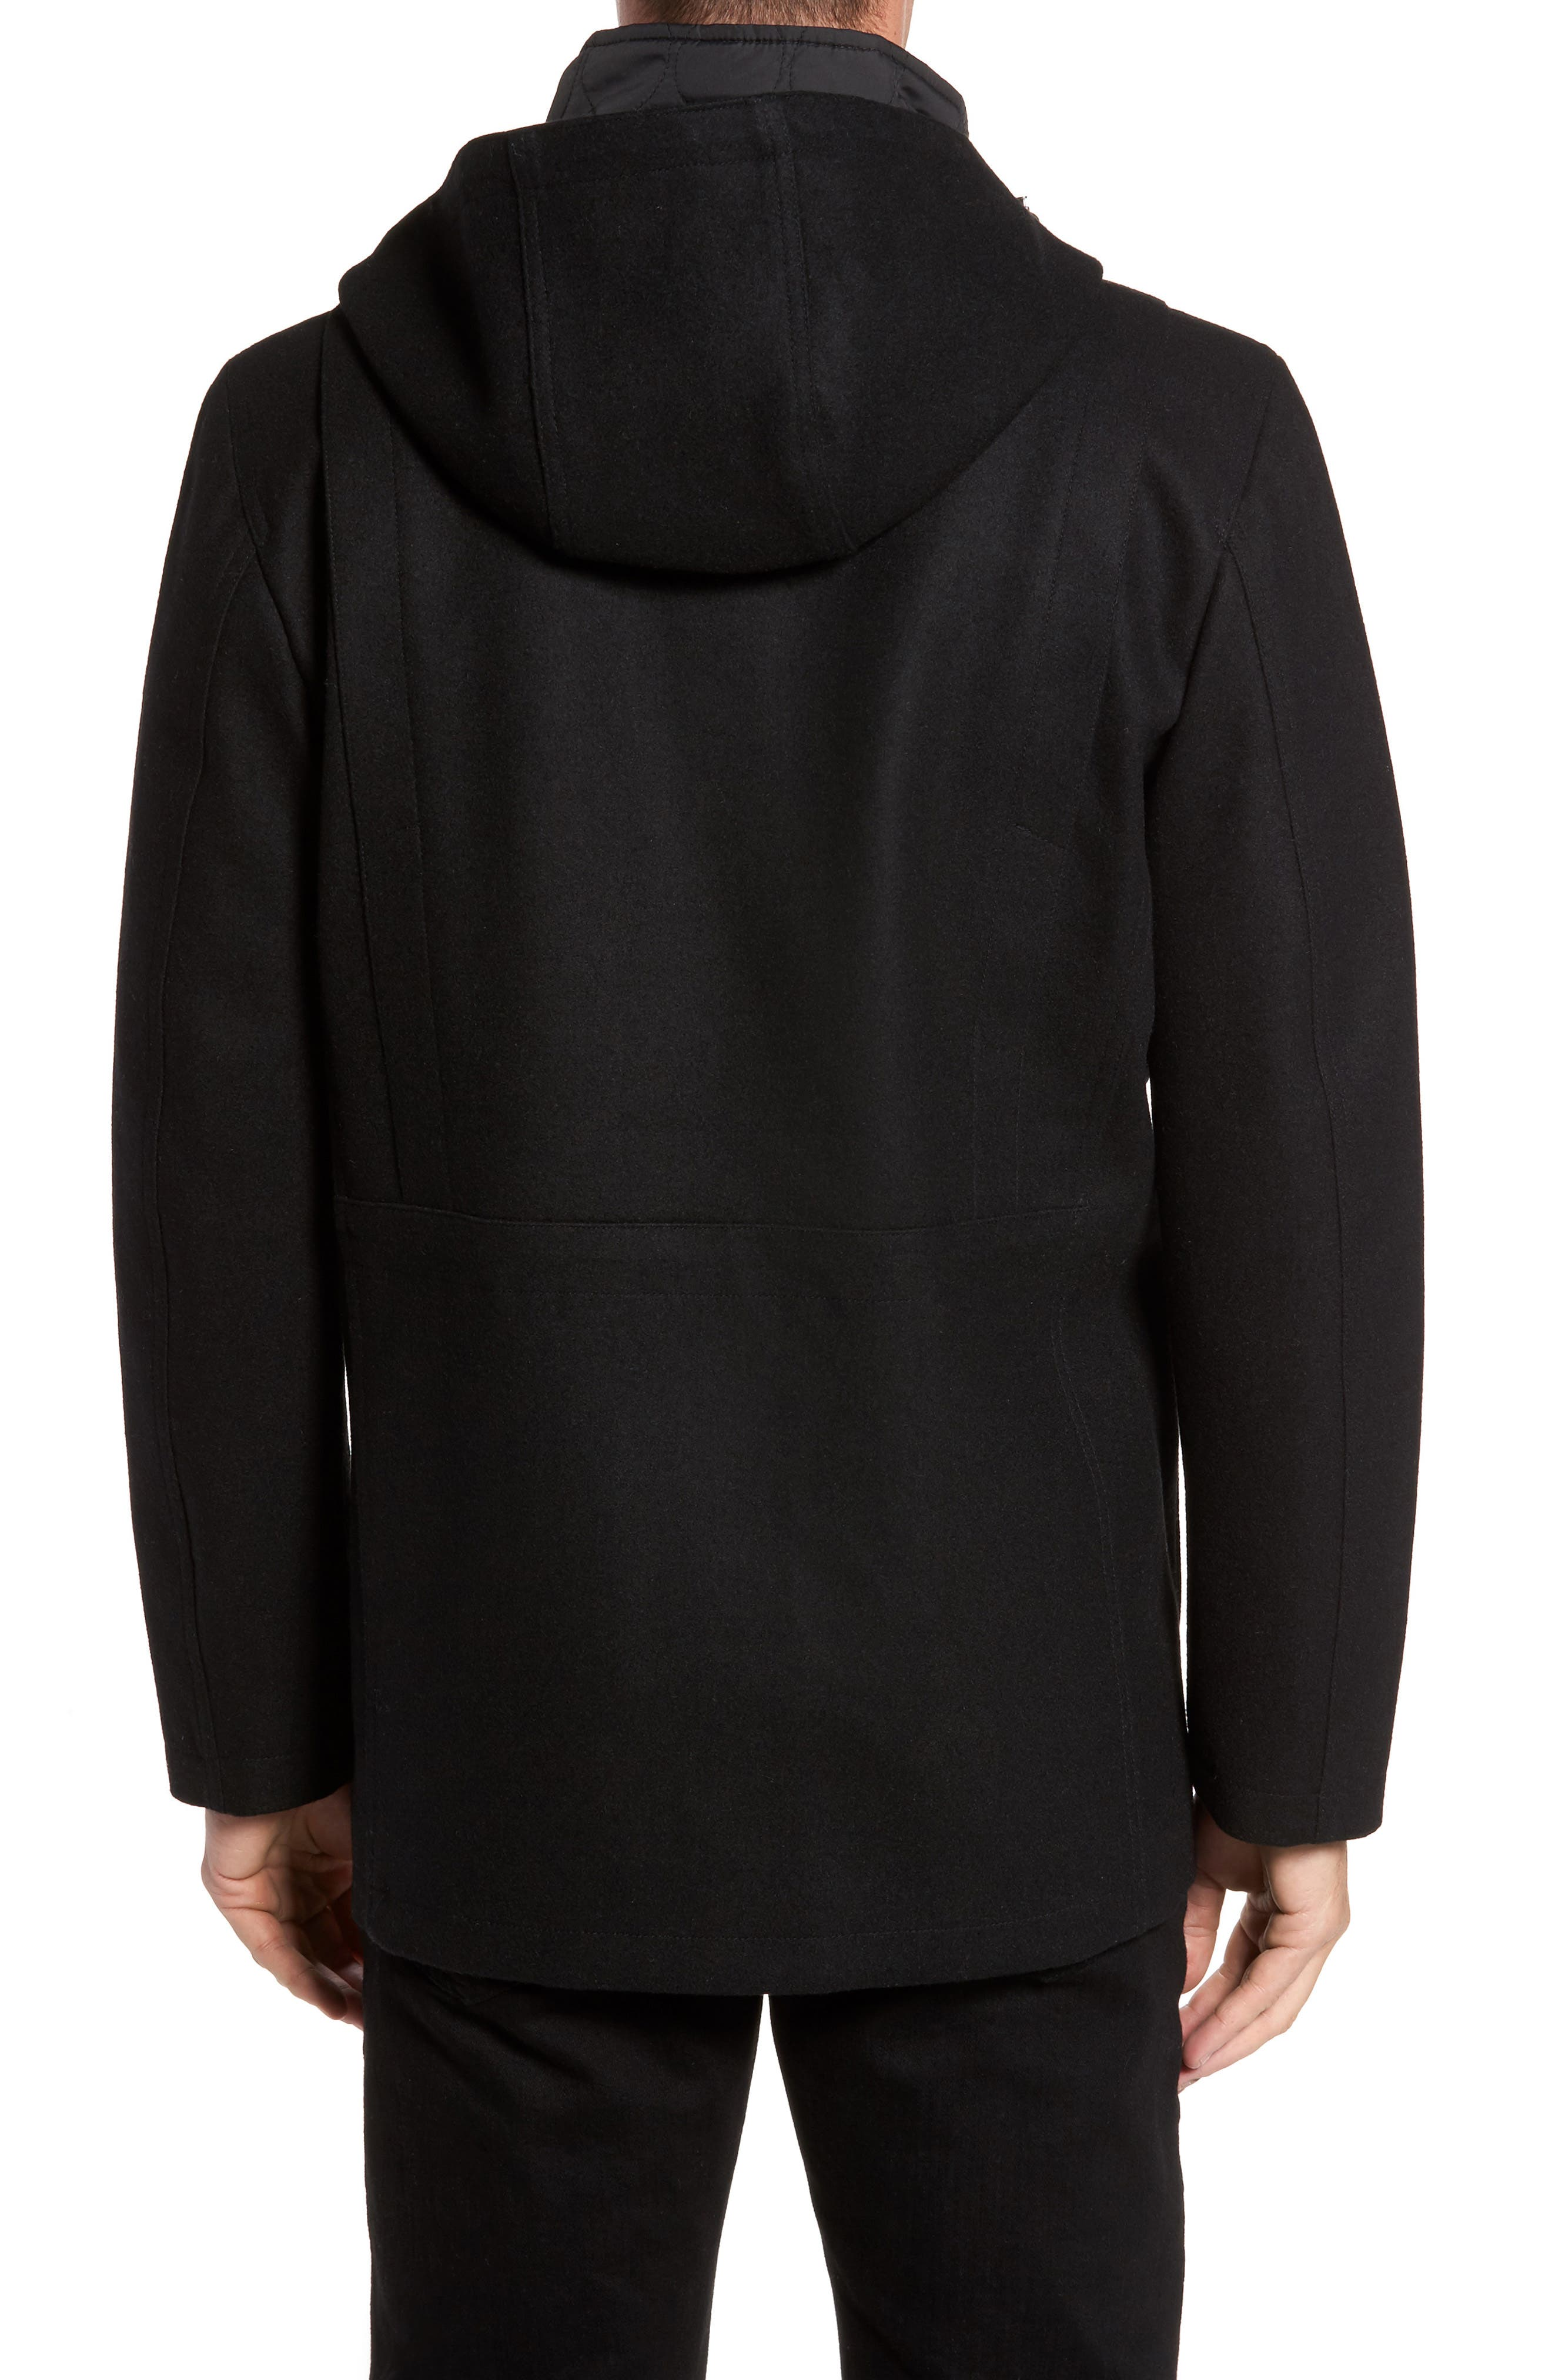 Hooded Jacket with Removable Bib,                             Alternate thumbnail 2, color,                             001